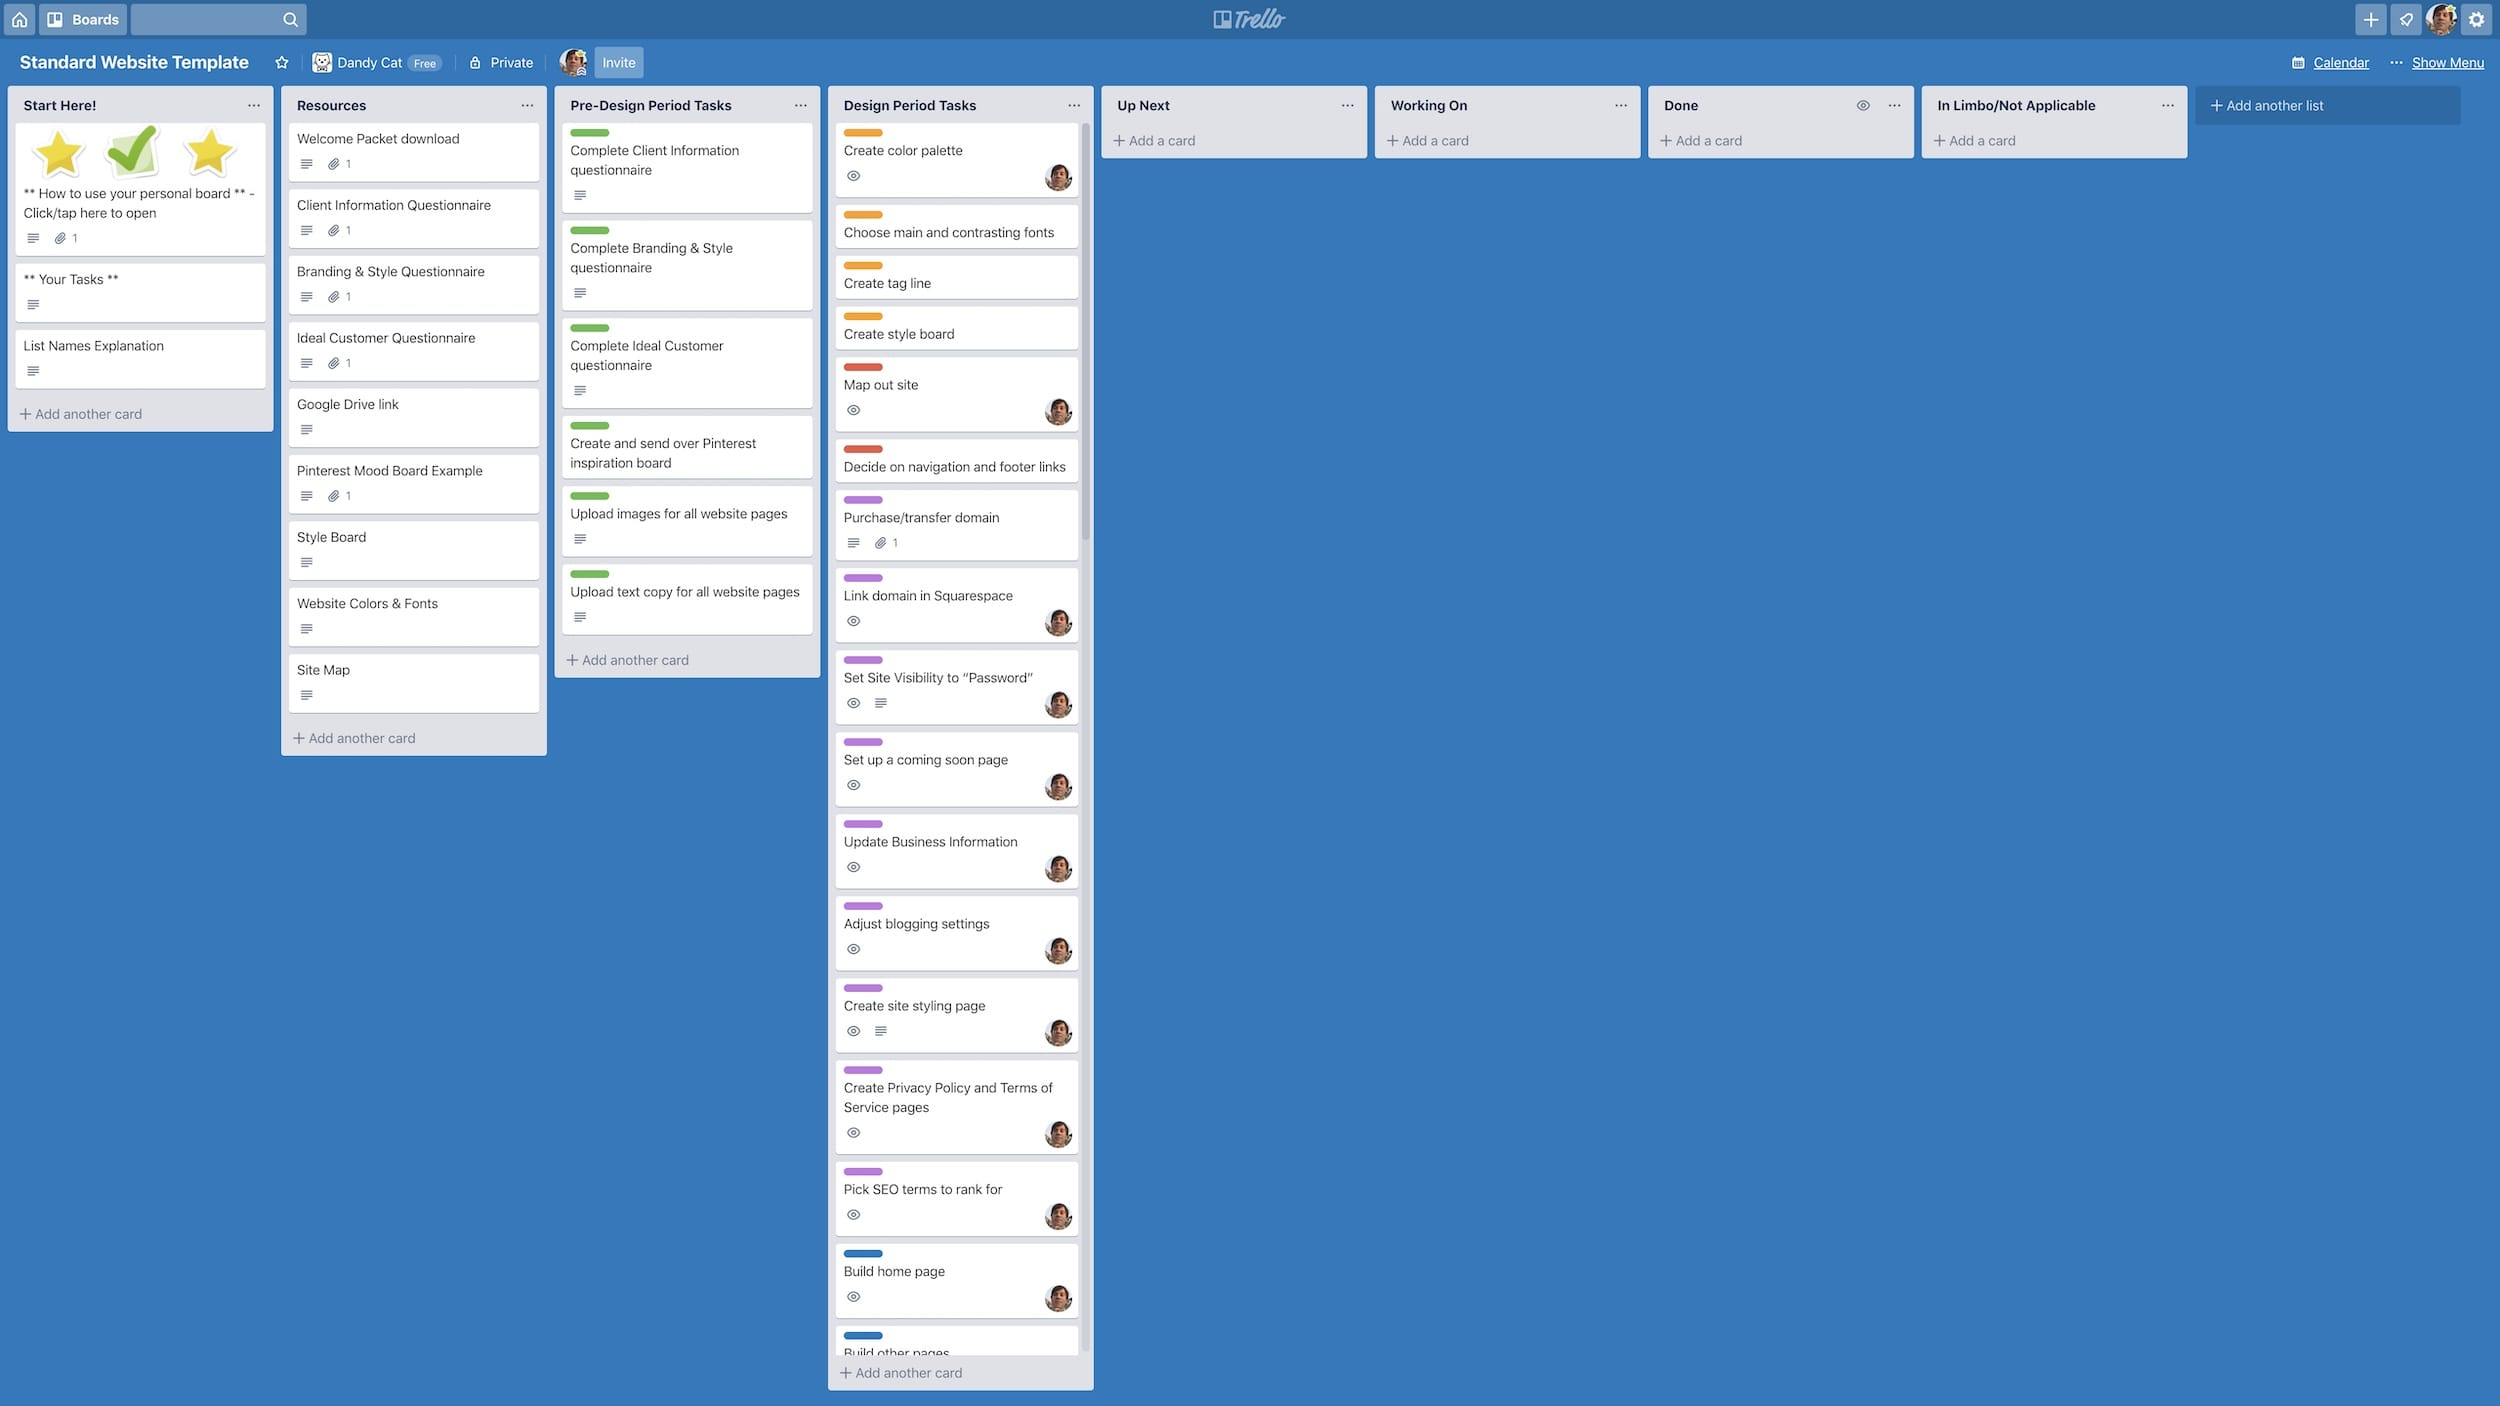 An image of a standard website project board created using the project management app called Trello.